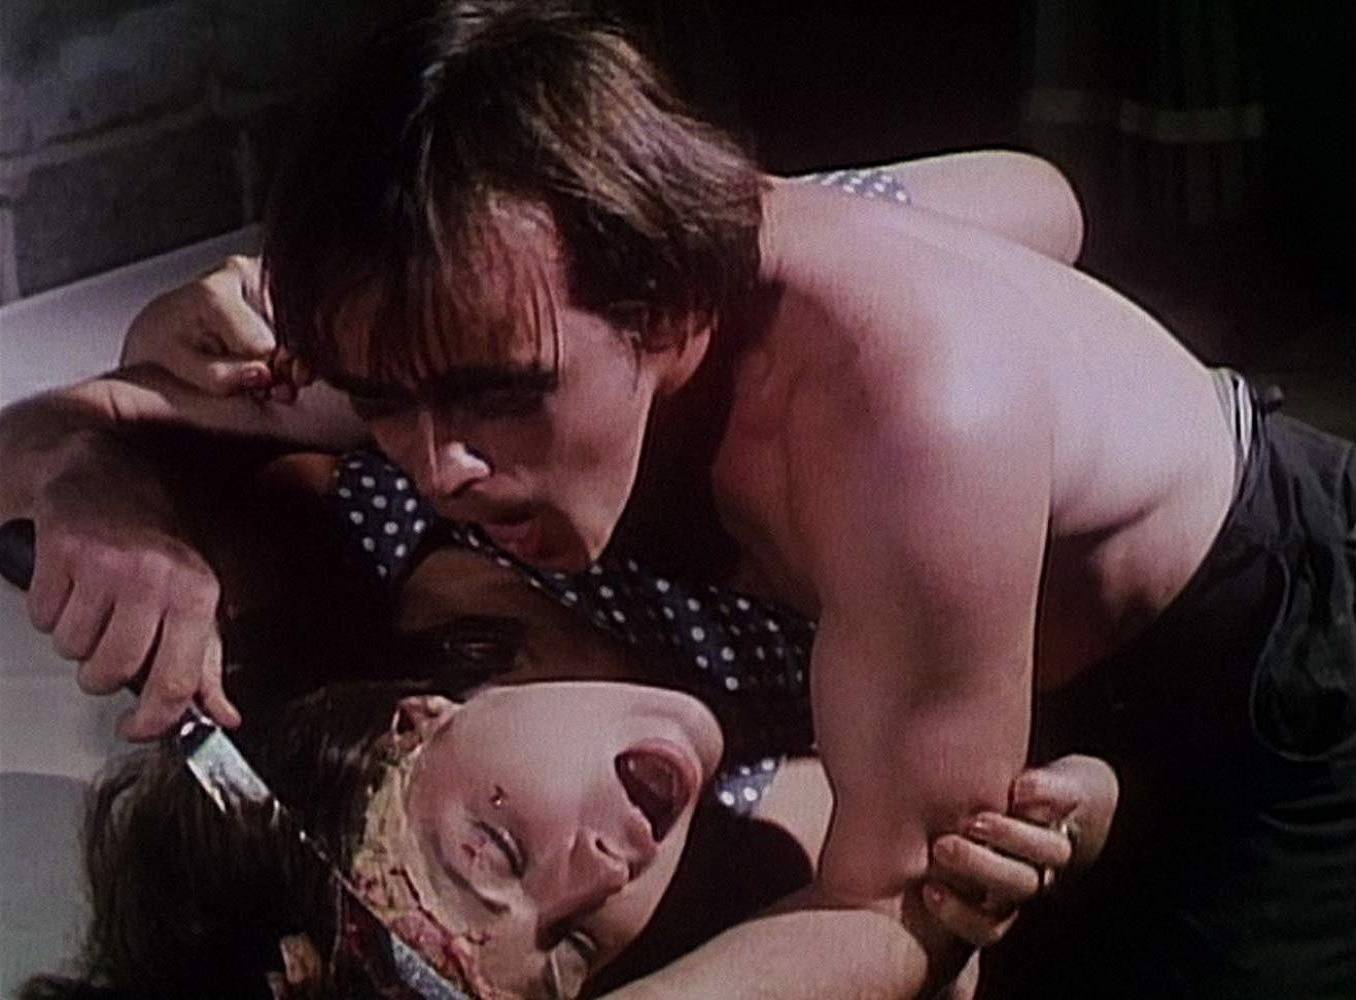 Chris Martell scalps a woman in The Gruesome Twosome (1967)